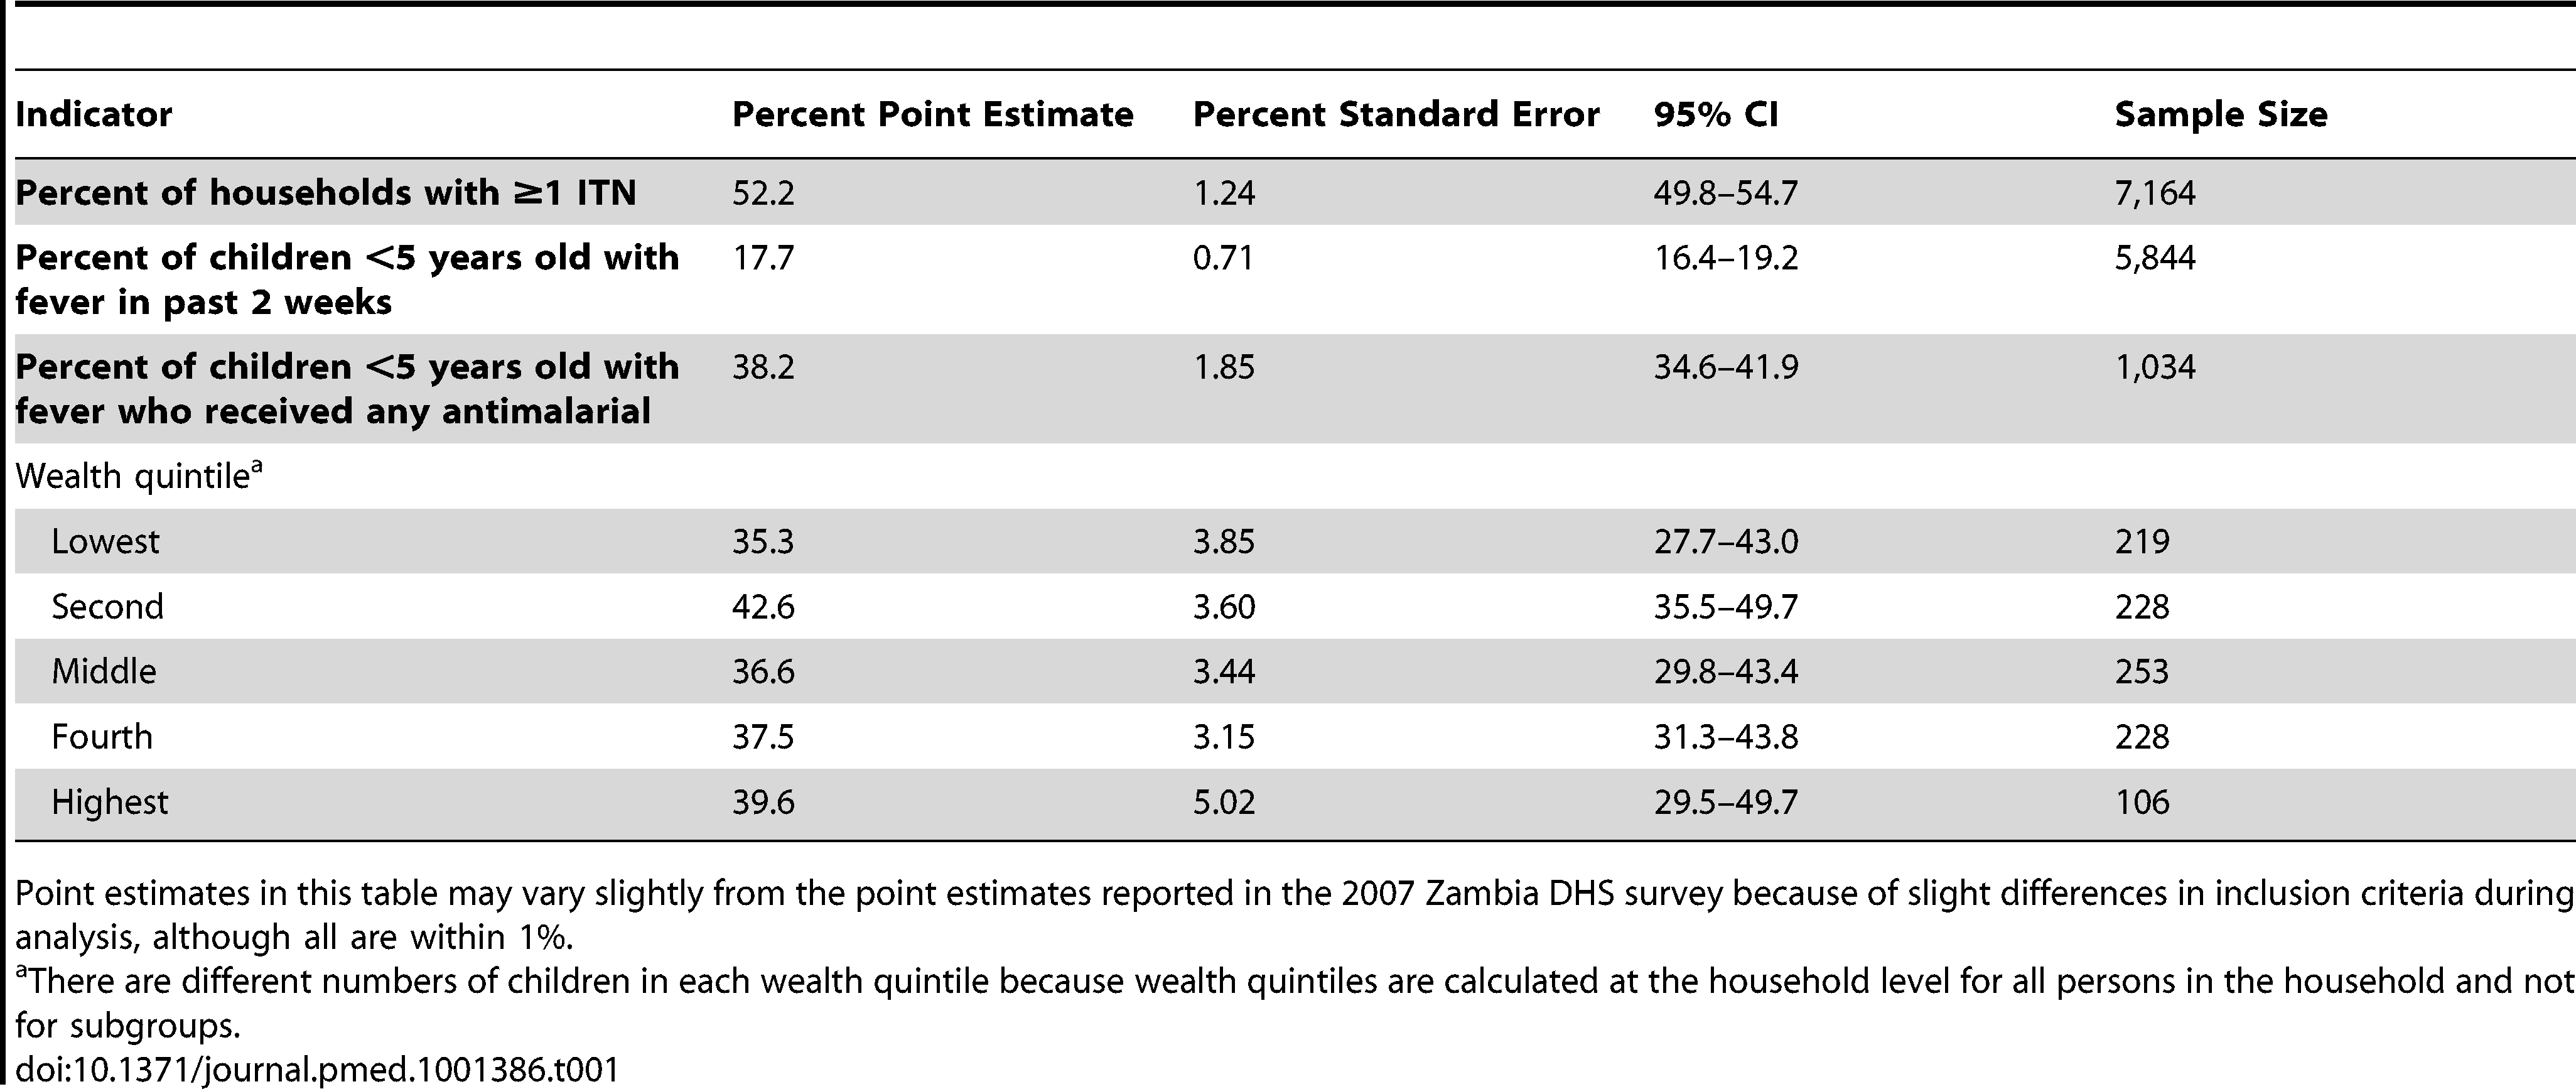 Sampling characteristics of selected point estimates from the 2007 Zambia DHS Survey <em class=&quot;ref&quot;>[7]</em>.